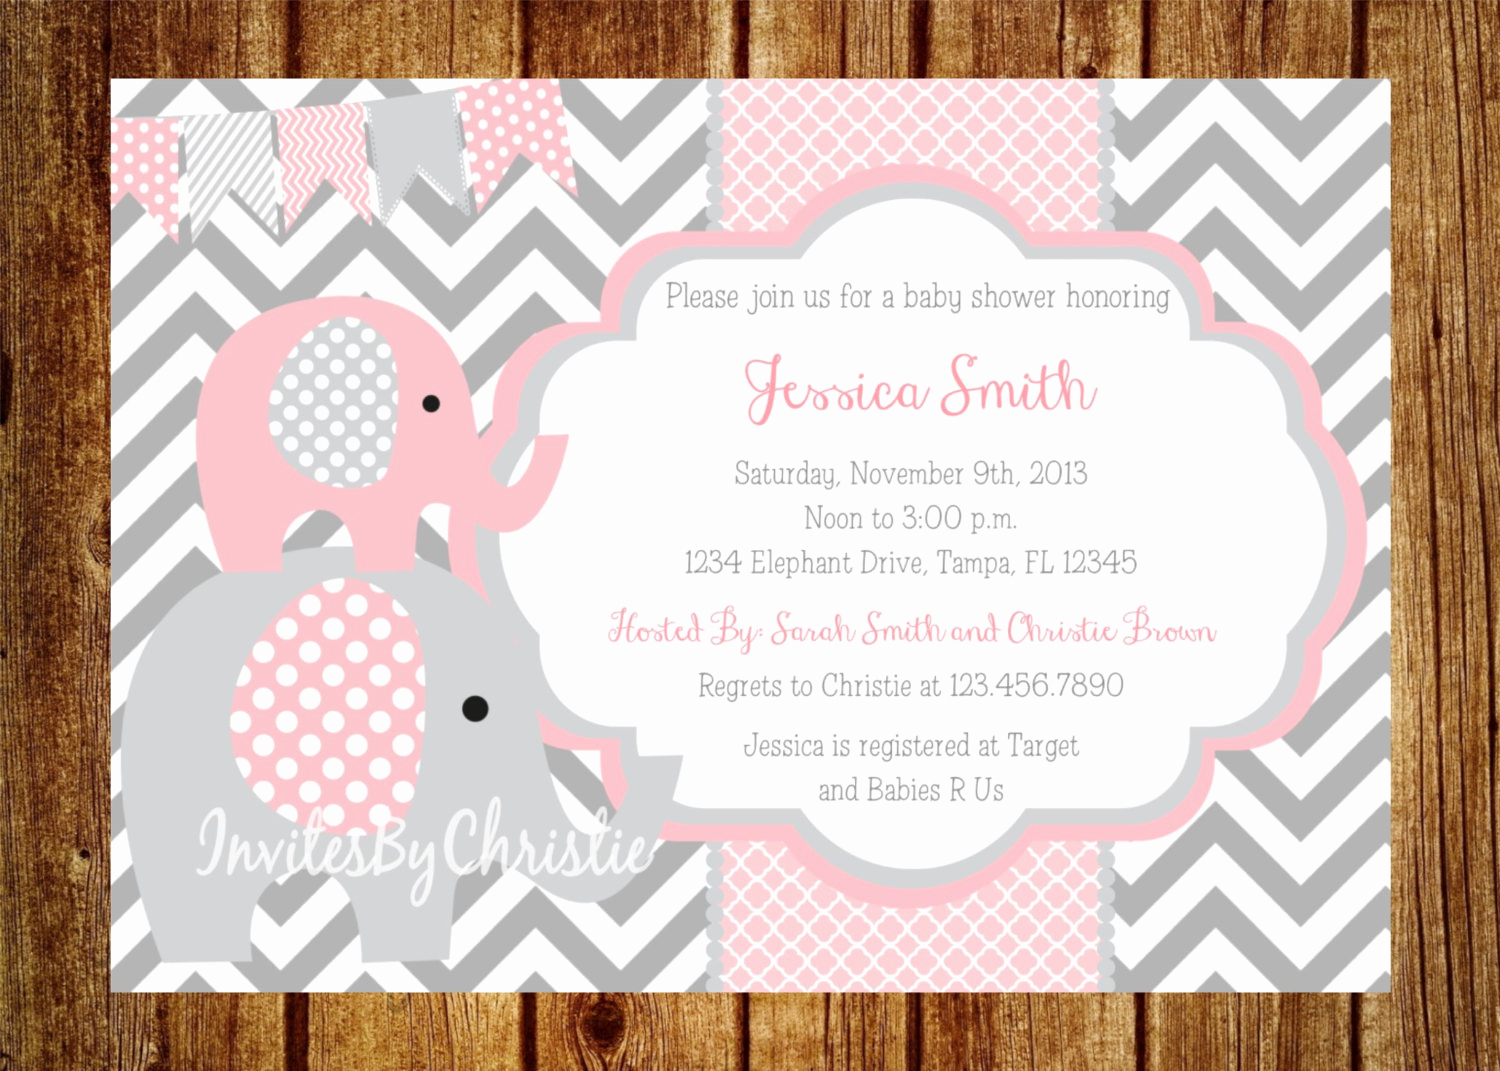 Elephant Invitation Baby Shower Lovely Pink and Gray Elephant Baby Shower Invitation Digital File